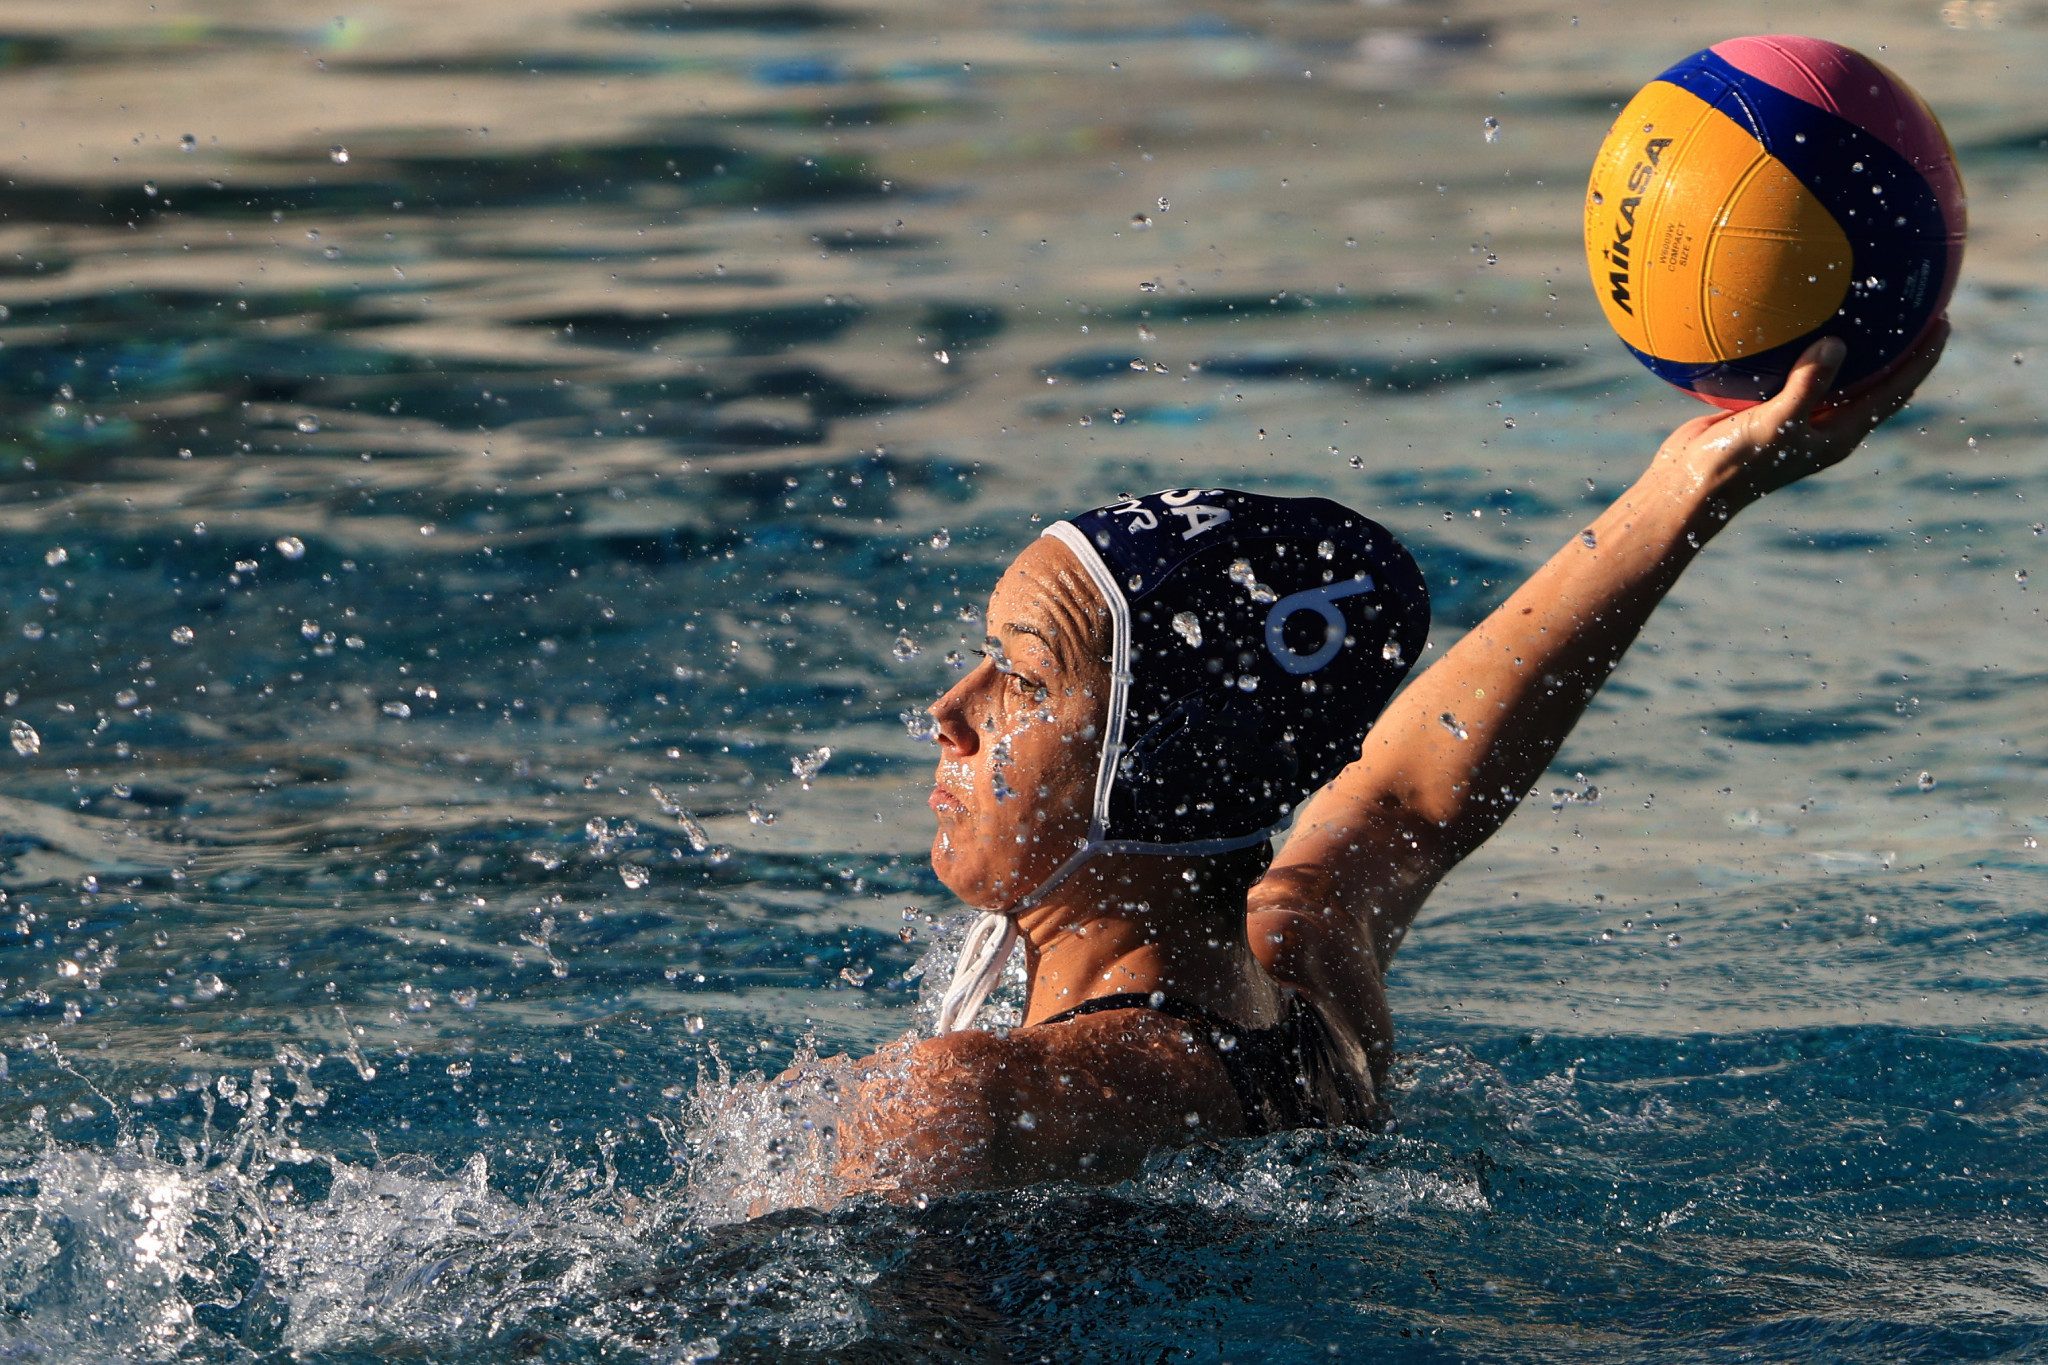 Hungary's winning run ends as United States retain Women's Water Polo World League title